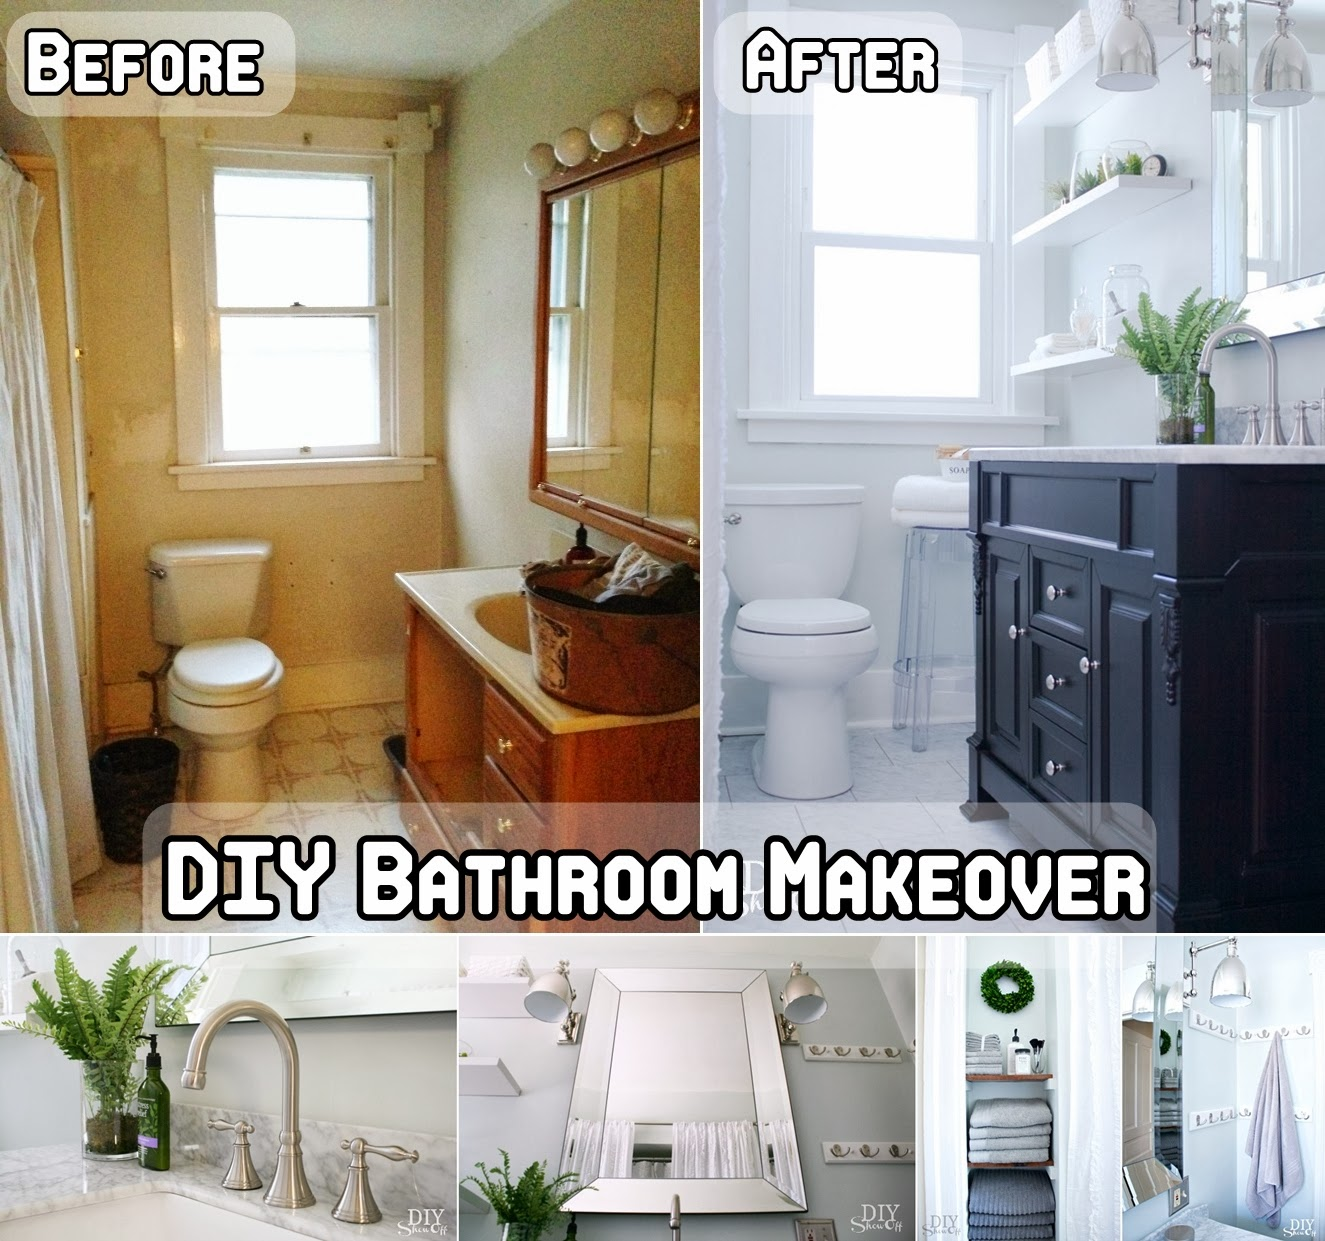 Diy Bathroom Makeover Ideas 28 Images Before And After